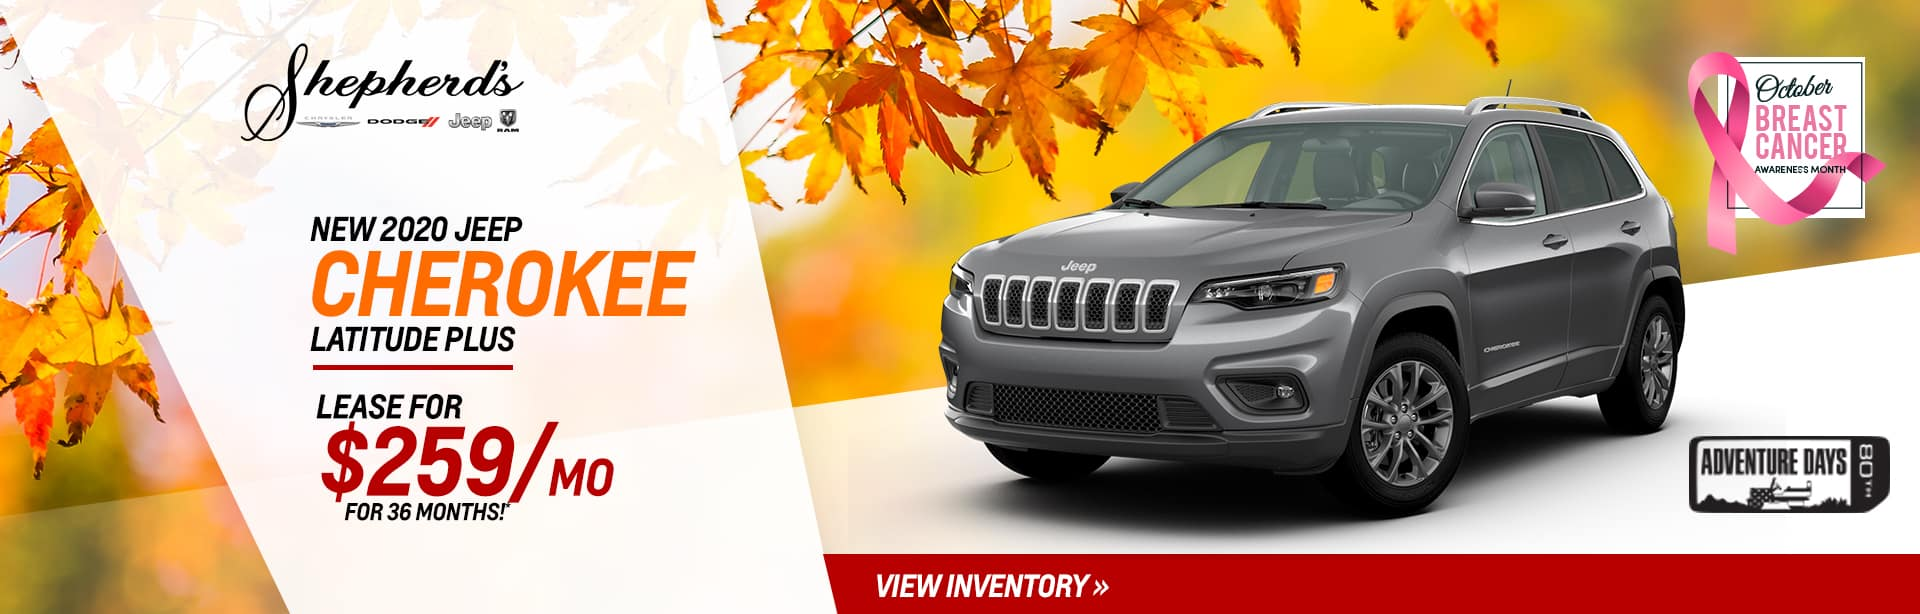 Lease a New Jeep Cherokee for $259 a month near Kendallville, Indiana